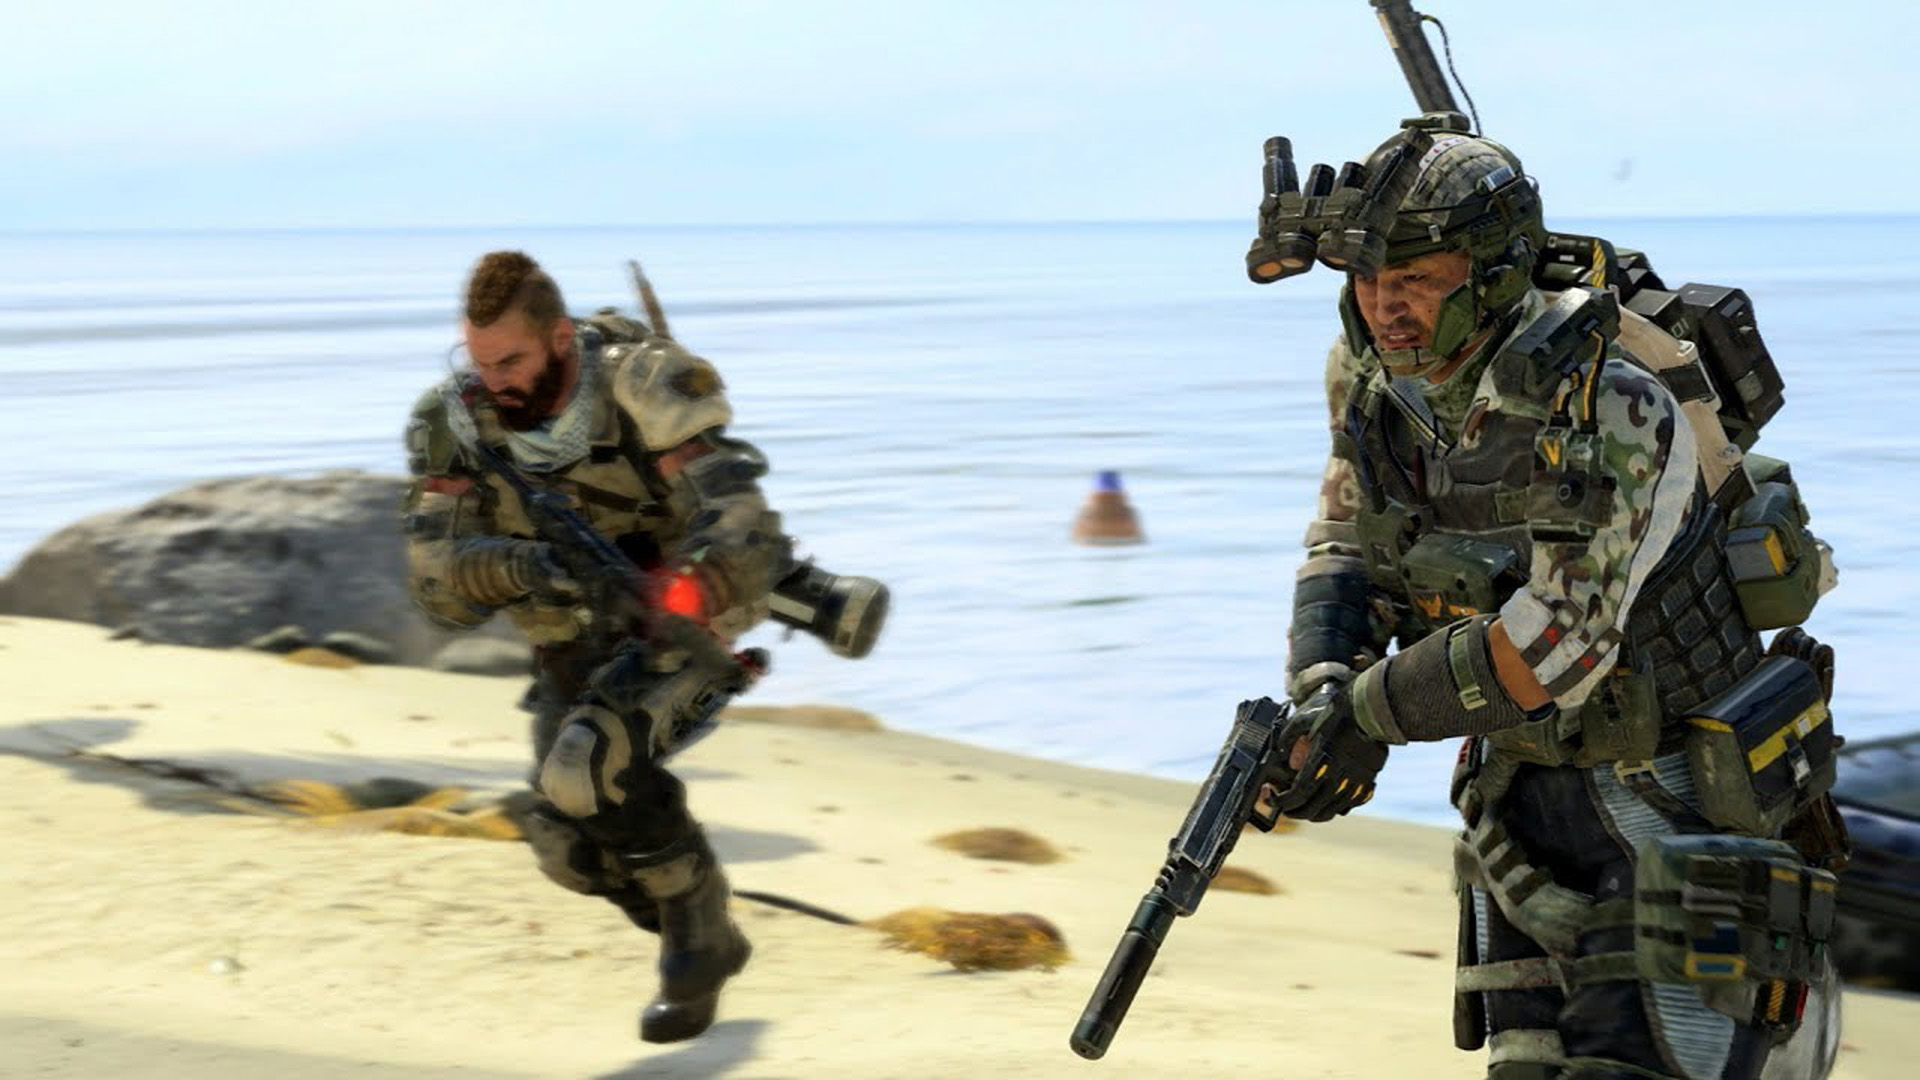 Call of Duty Blackout: Controls for PC, PS4 and Xbox One